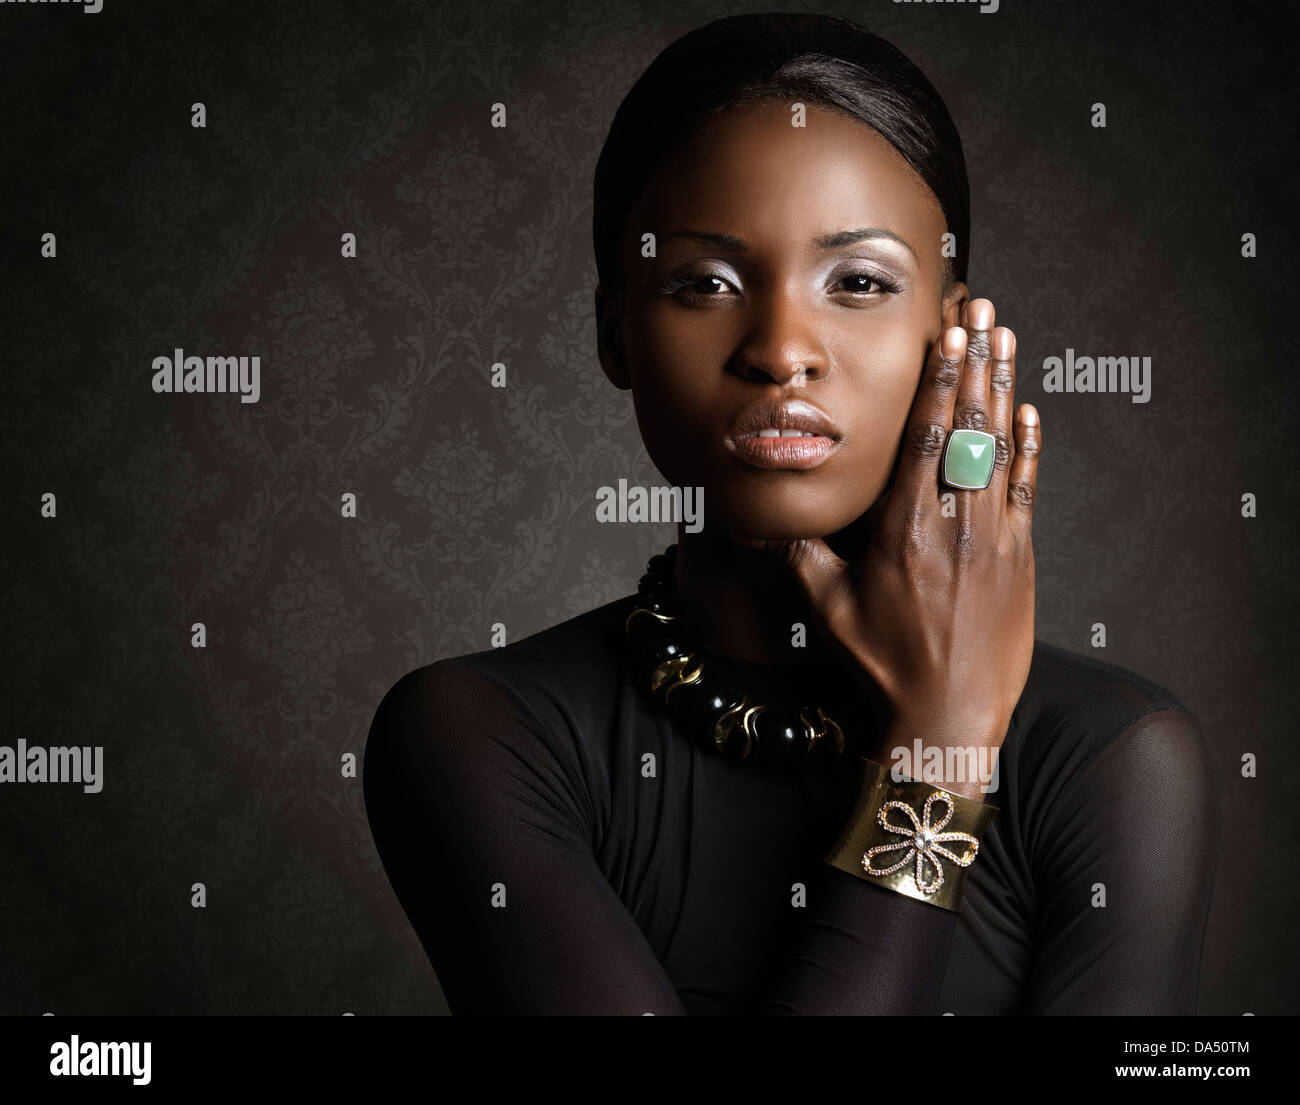 Beauty portrait of atractive african american woman in black wearing jewelry, ring, bracelet and necklace - Stock Image